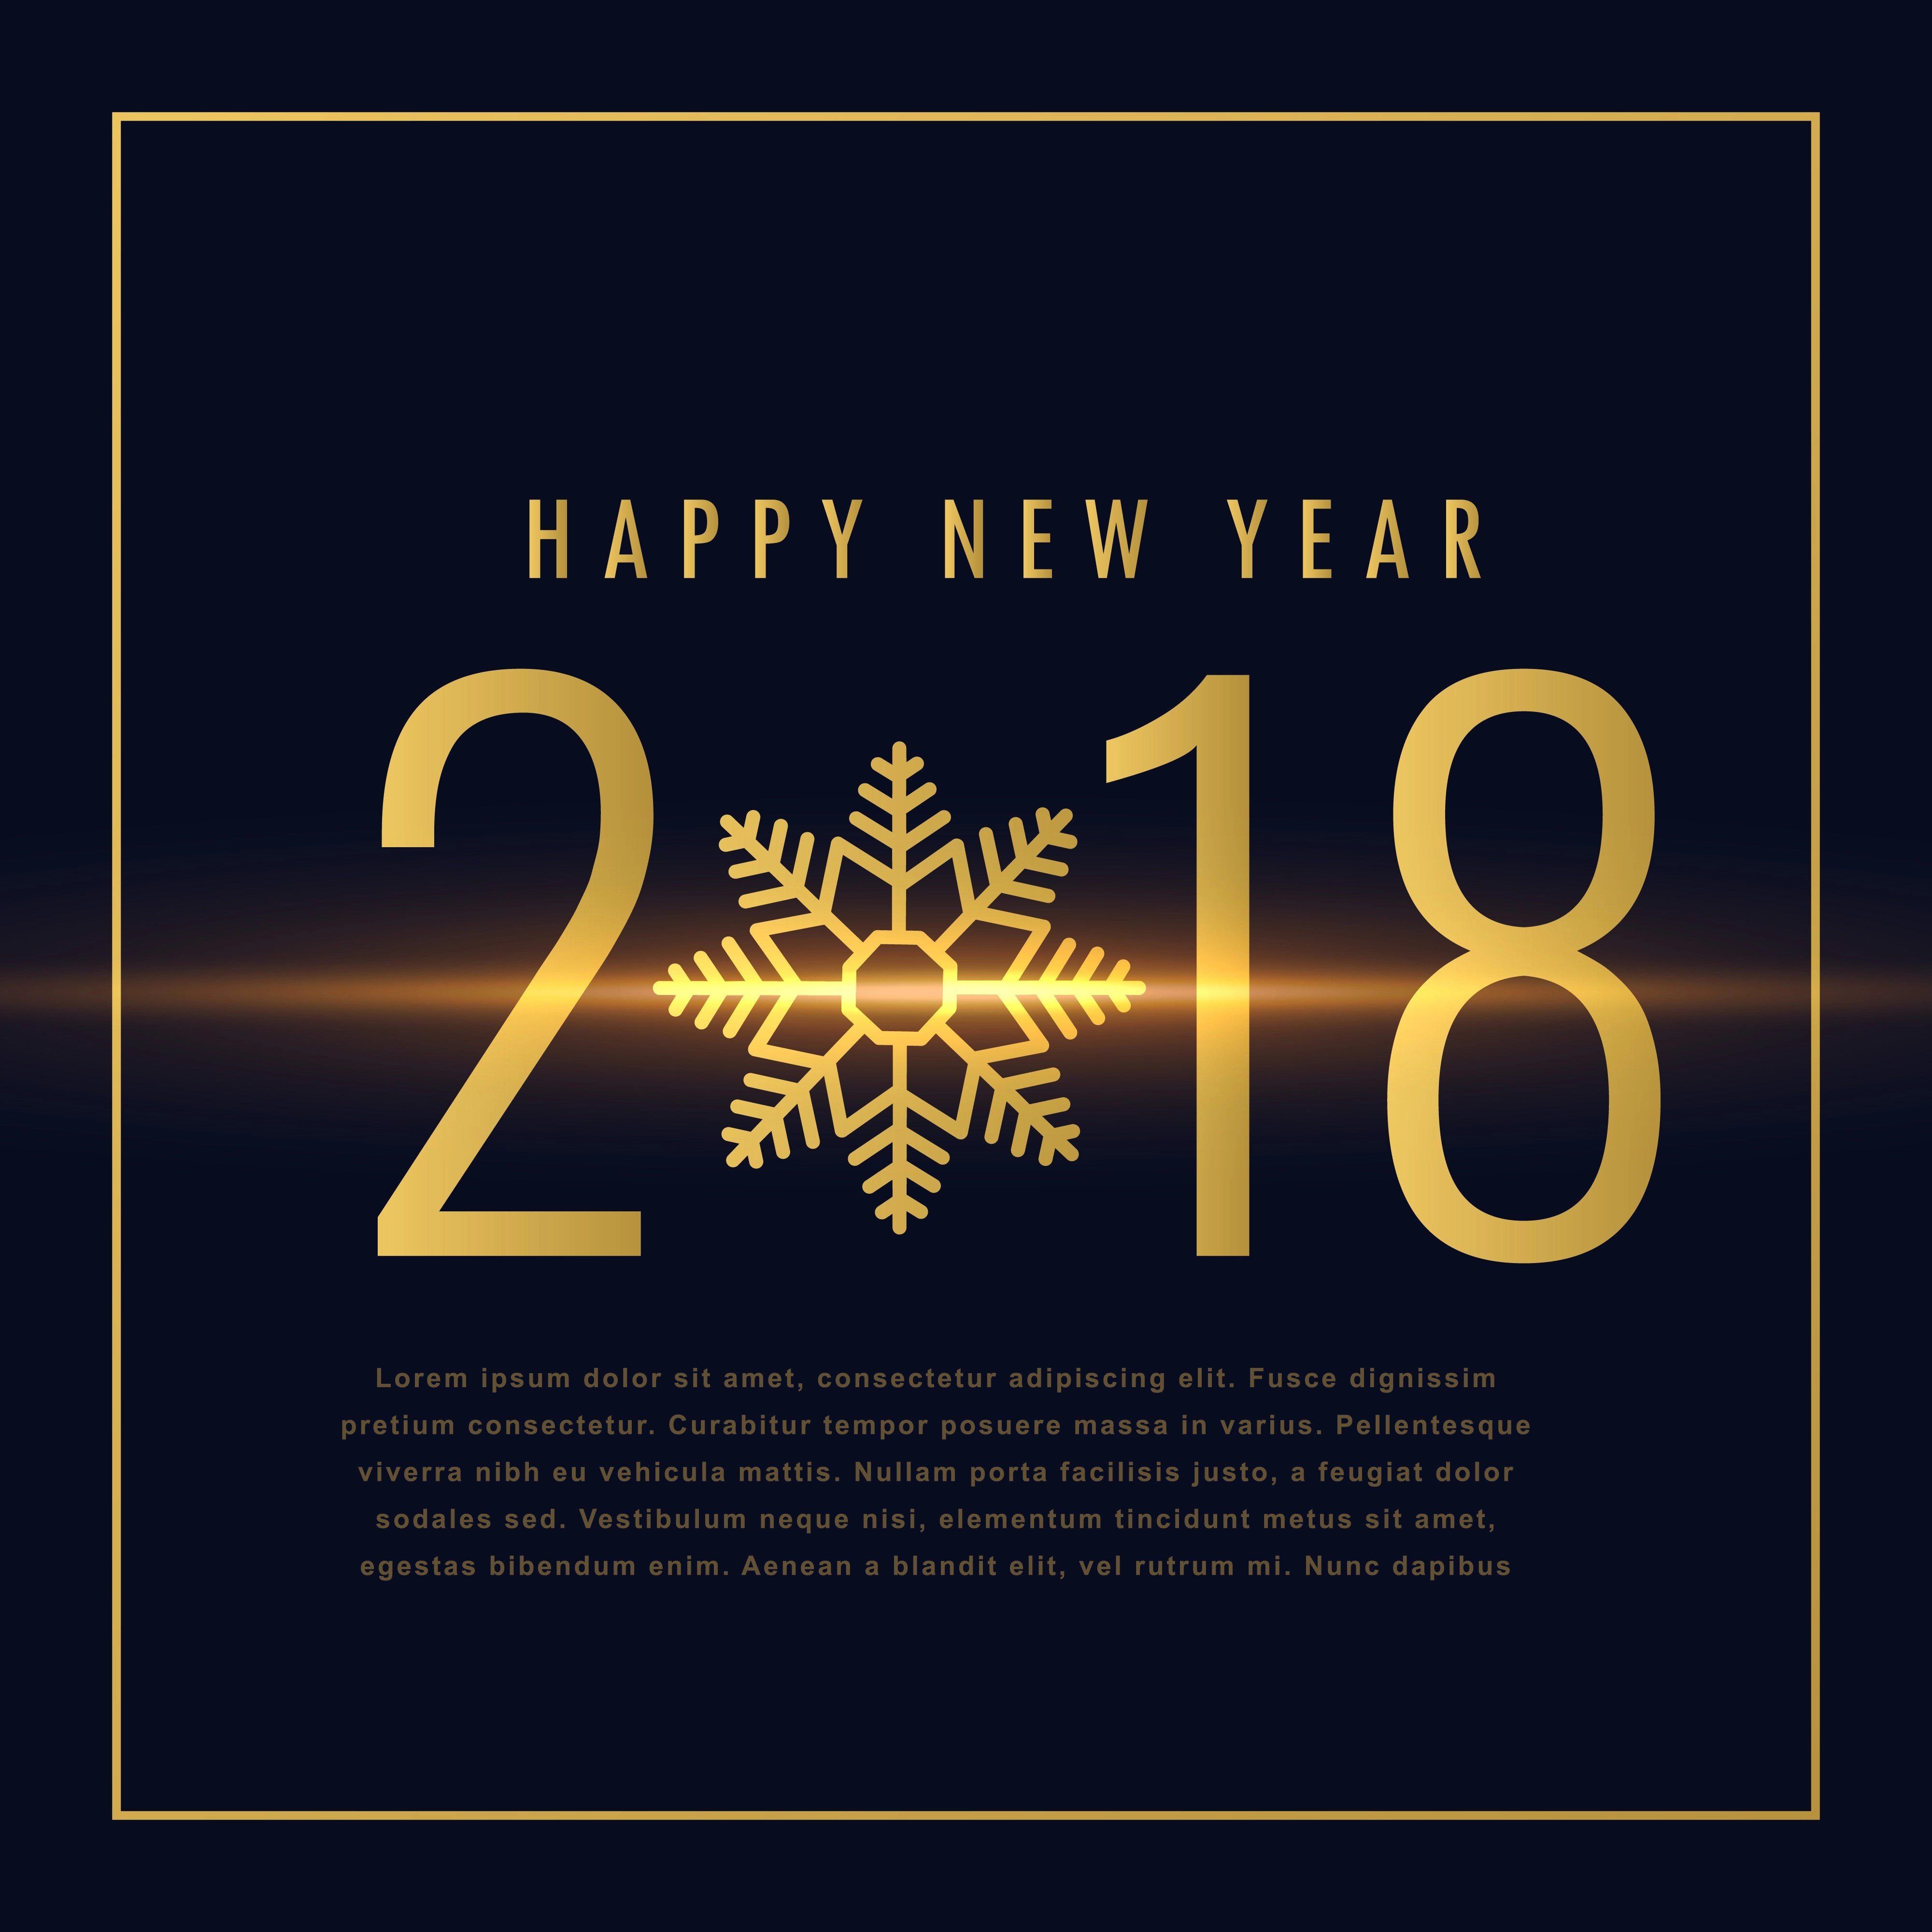 Happy New Year Text Written In Golden Style